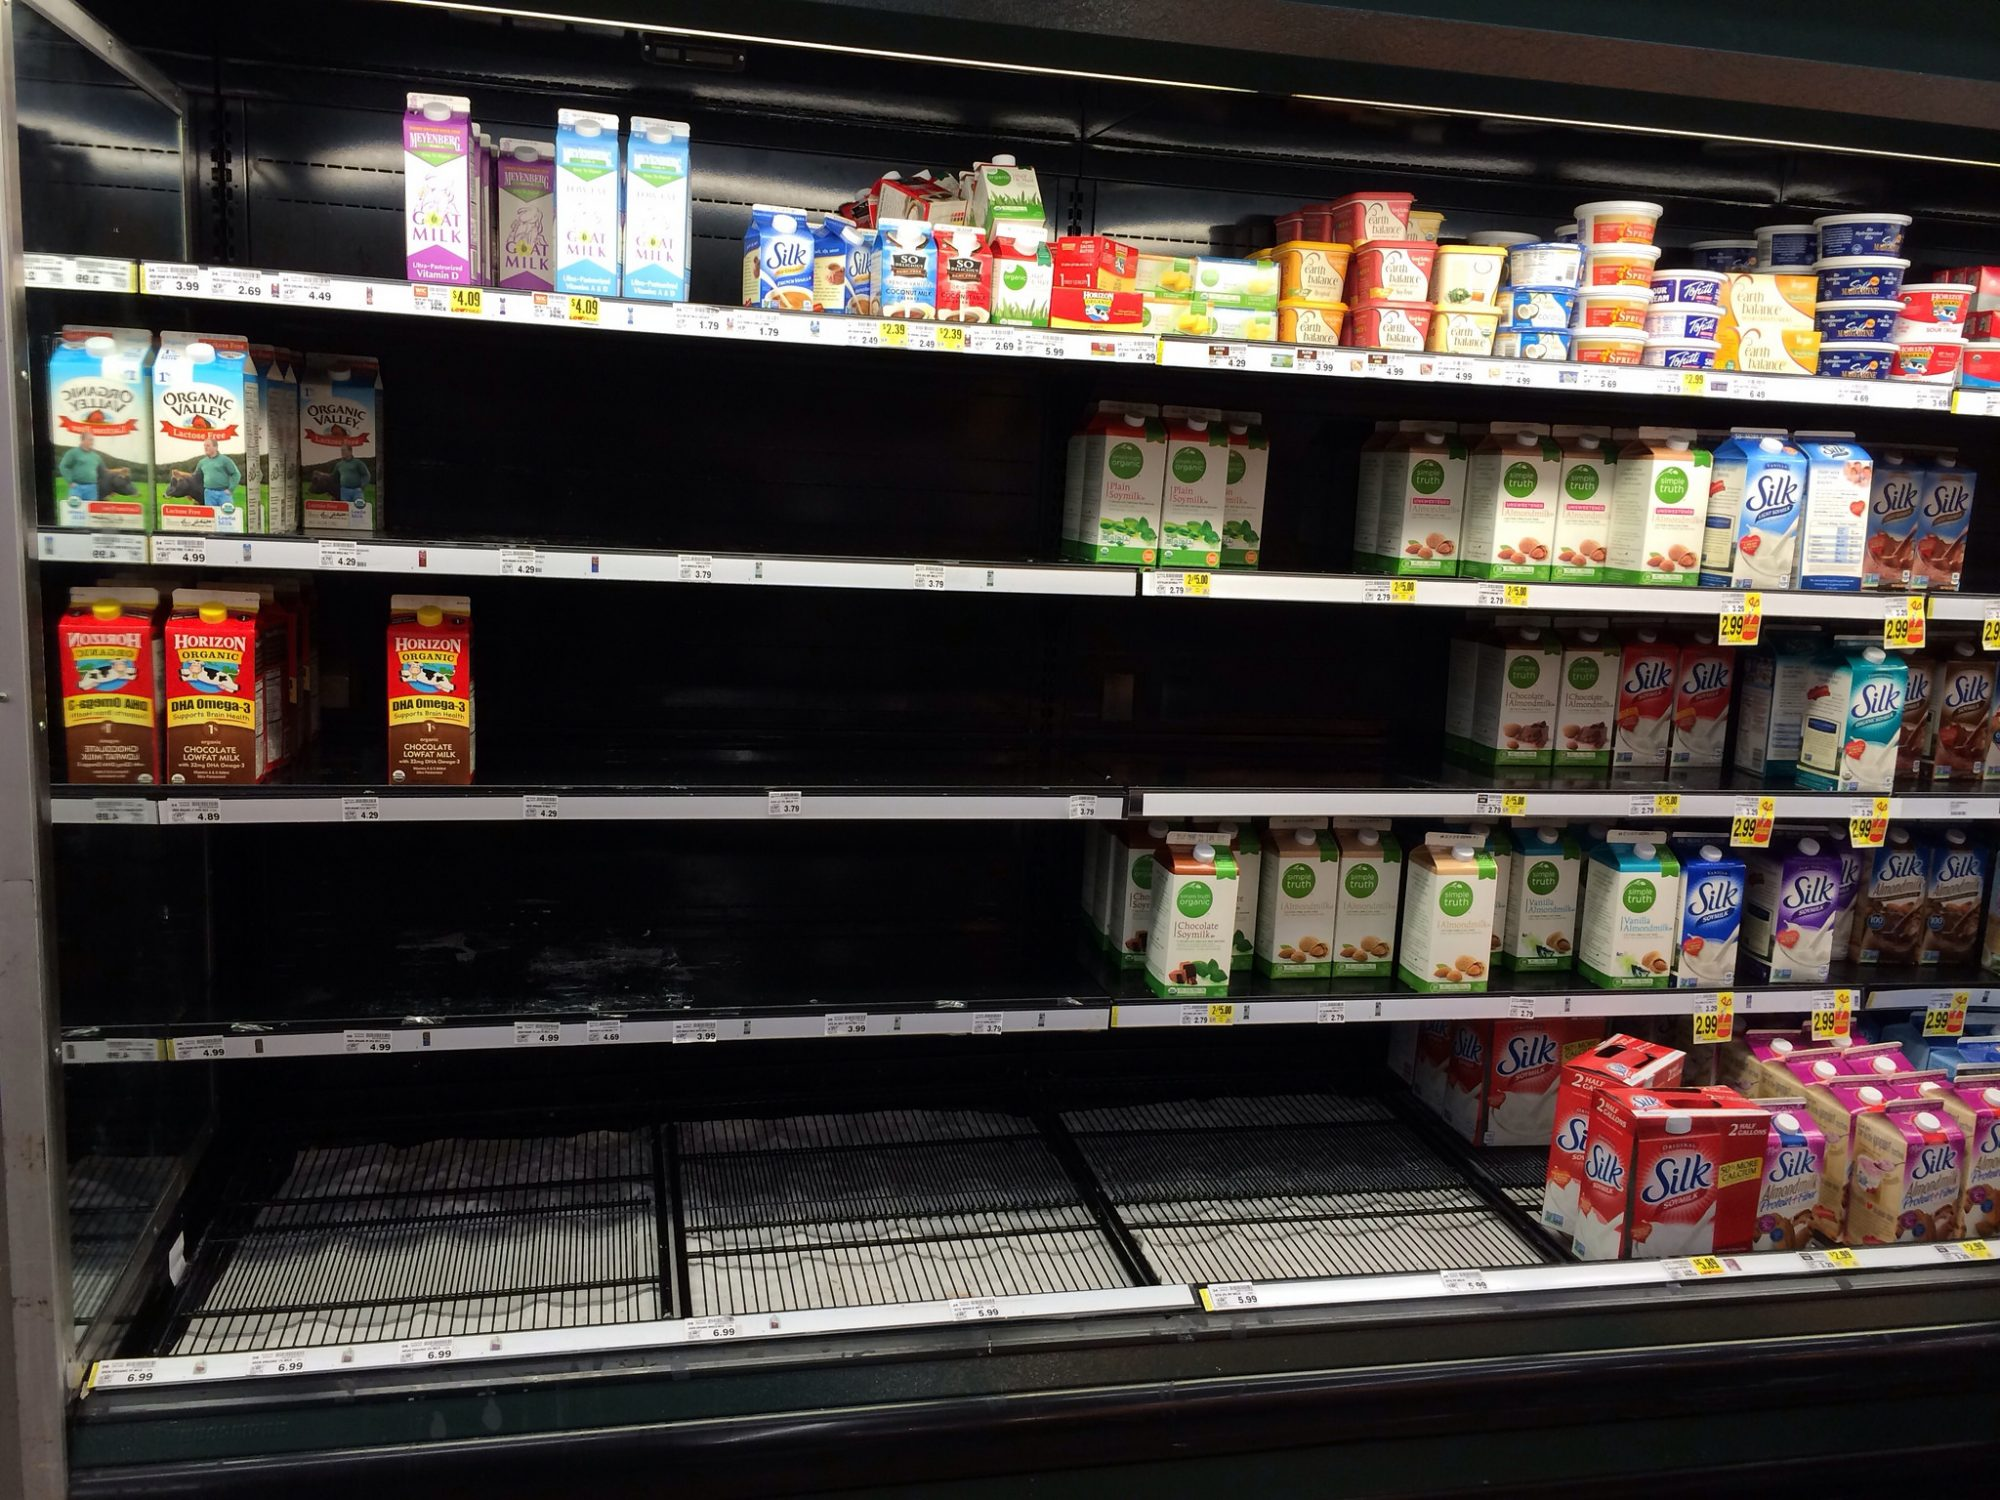 EC: Fluorescent Light Might Make Milk Taste Bad